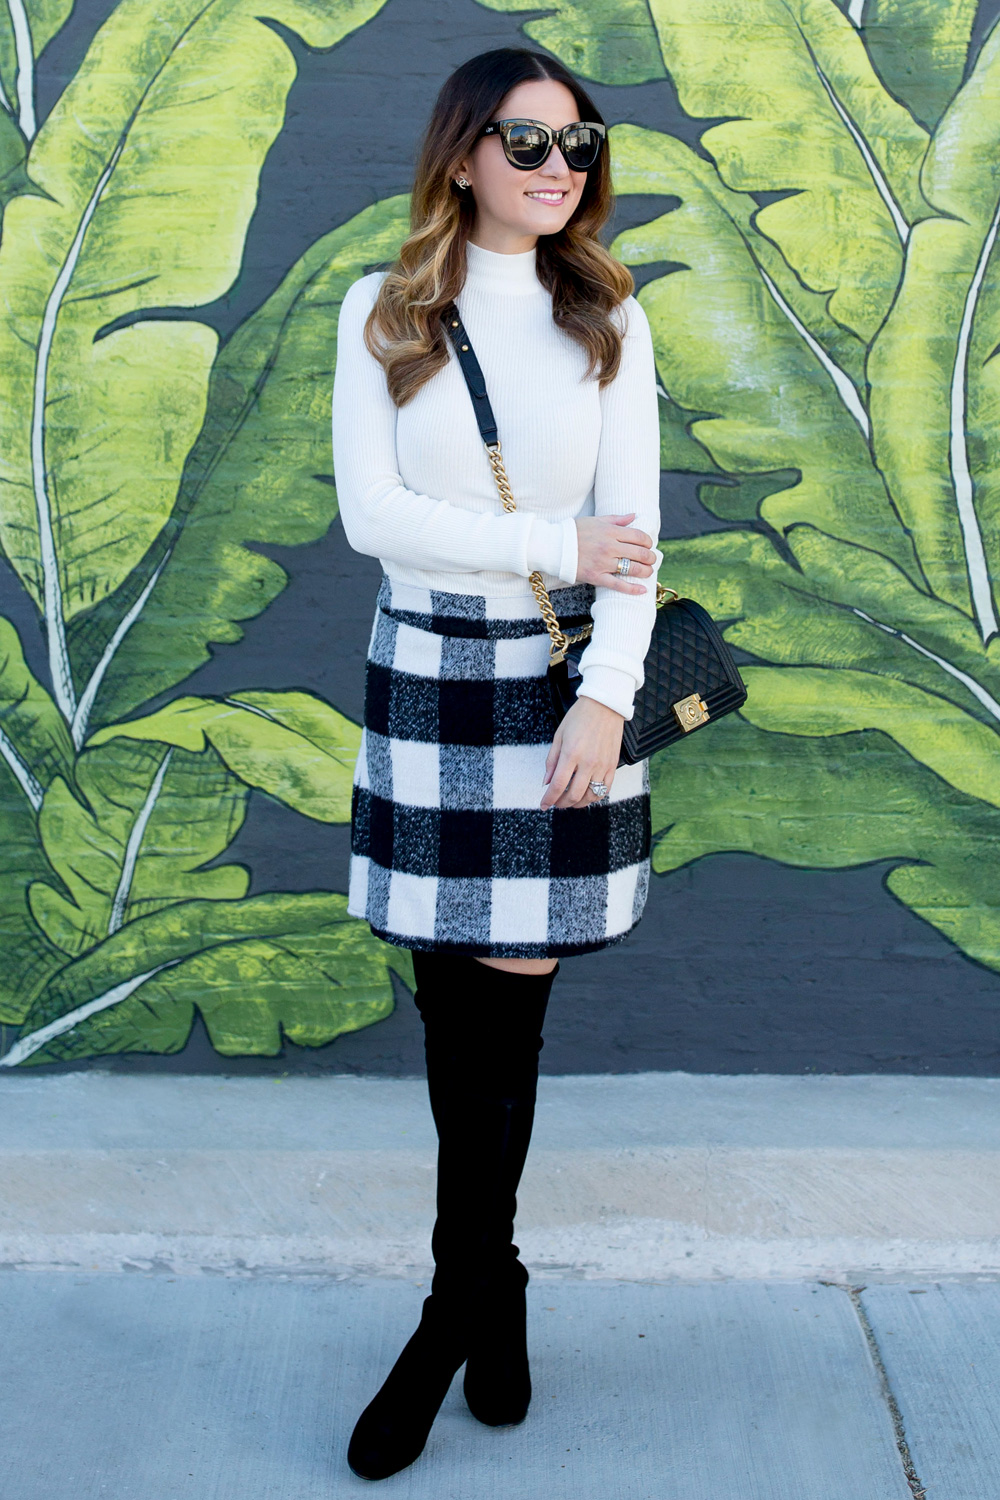 Jennifer Lake Style Charade in an ASOS black white check skirt, Chanel Boy Bag, and Stuart Weitzman Highland boots at a Chicago palm leaf mural